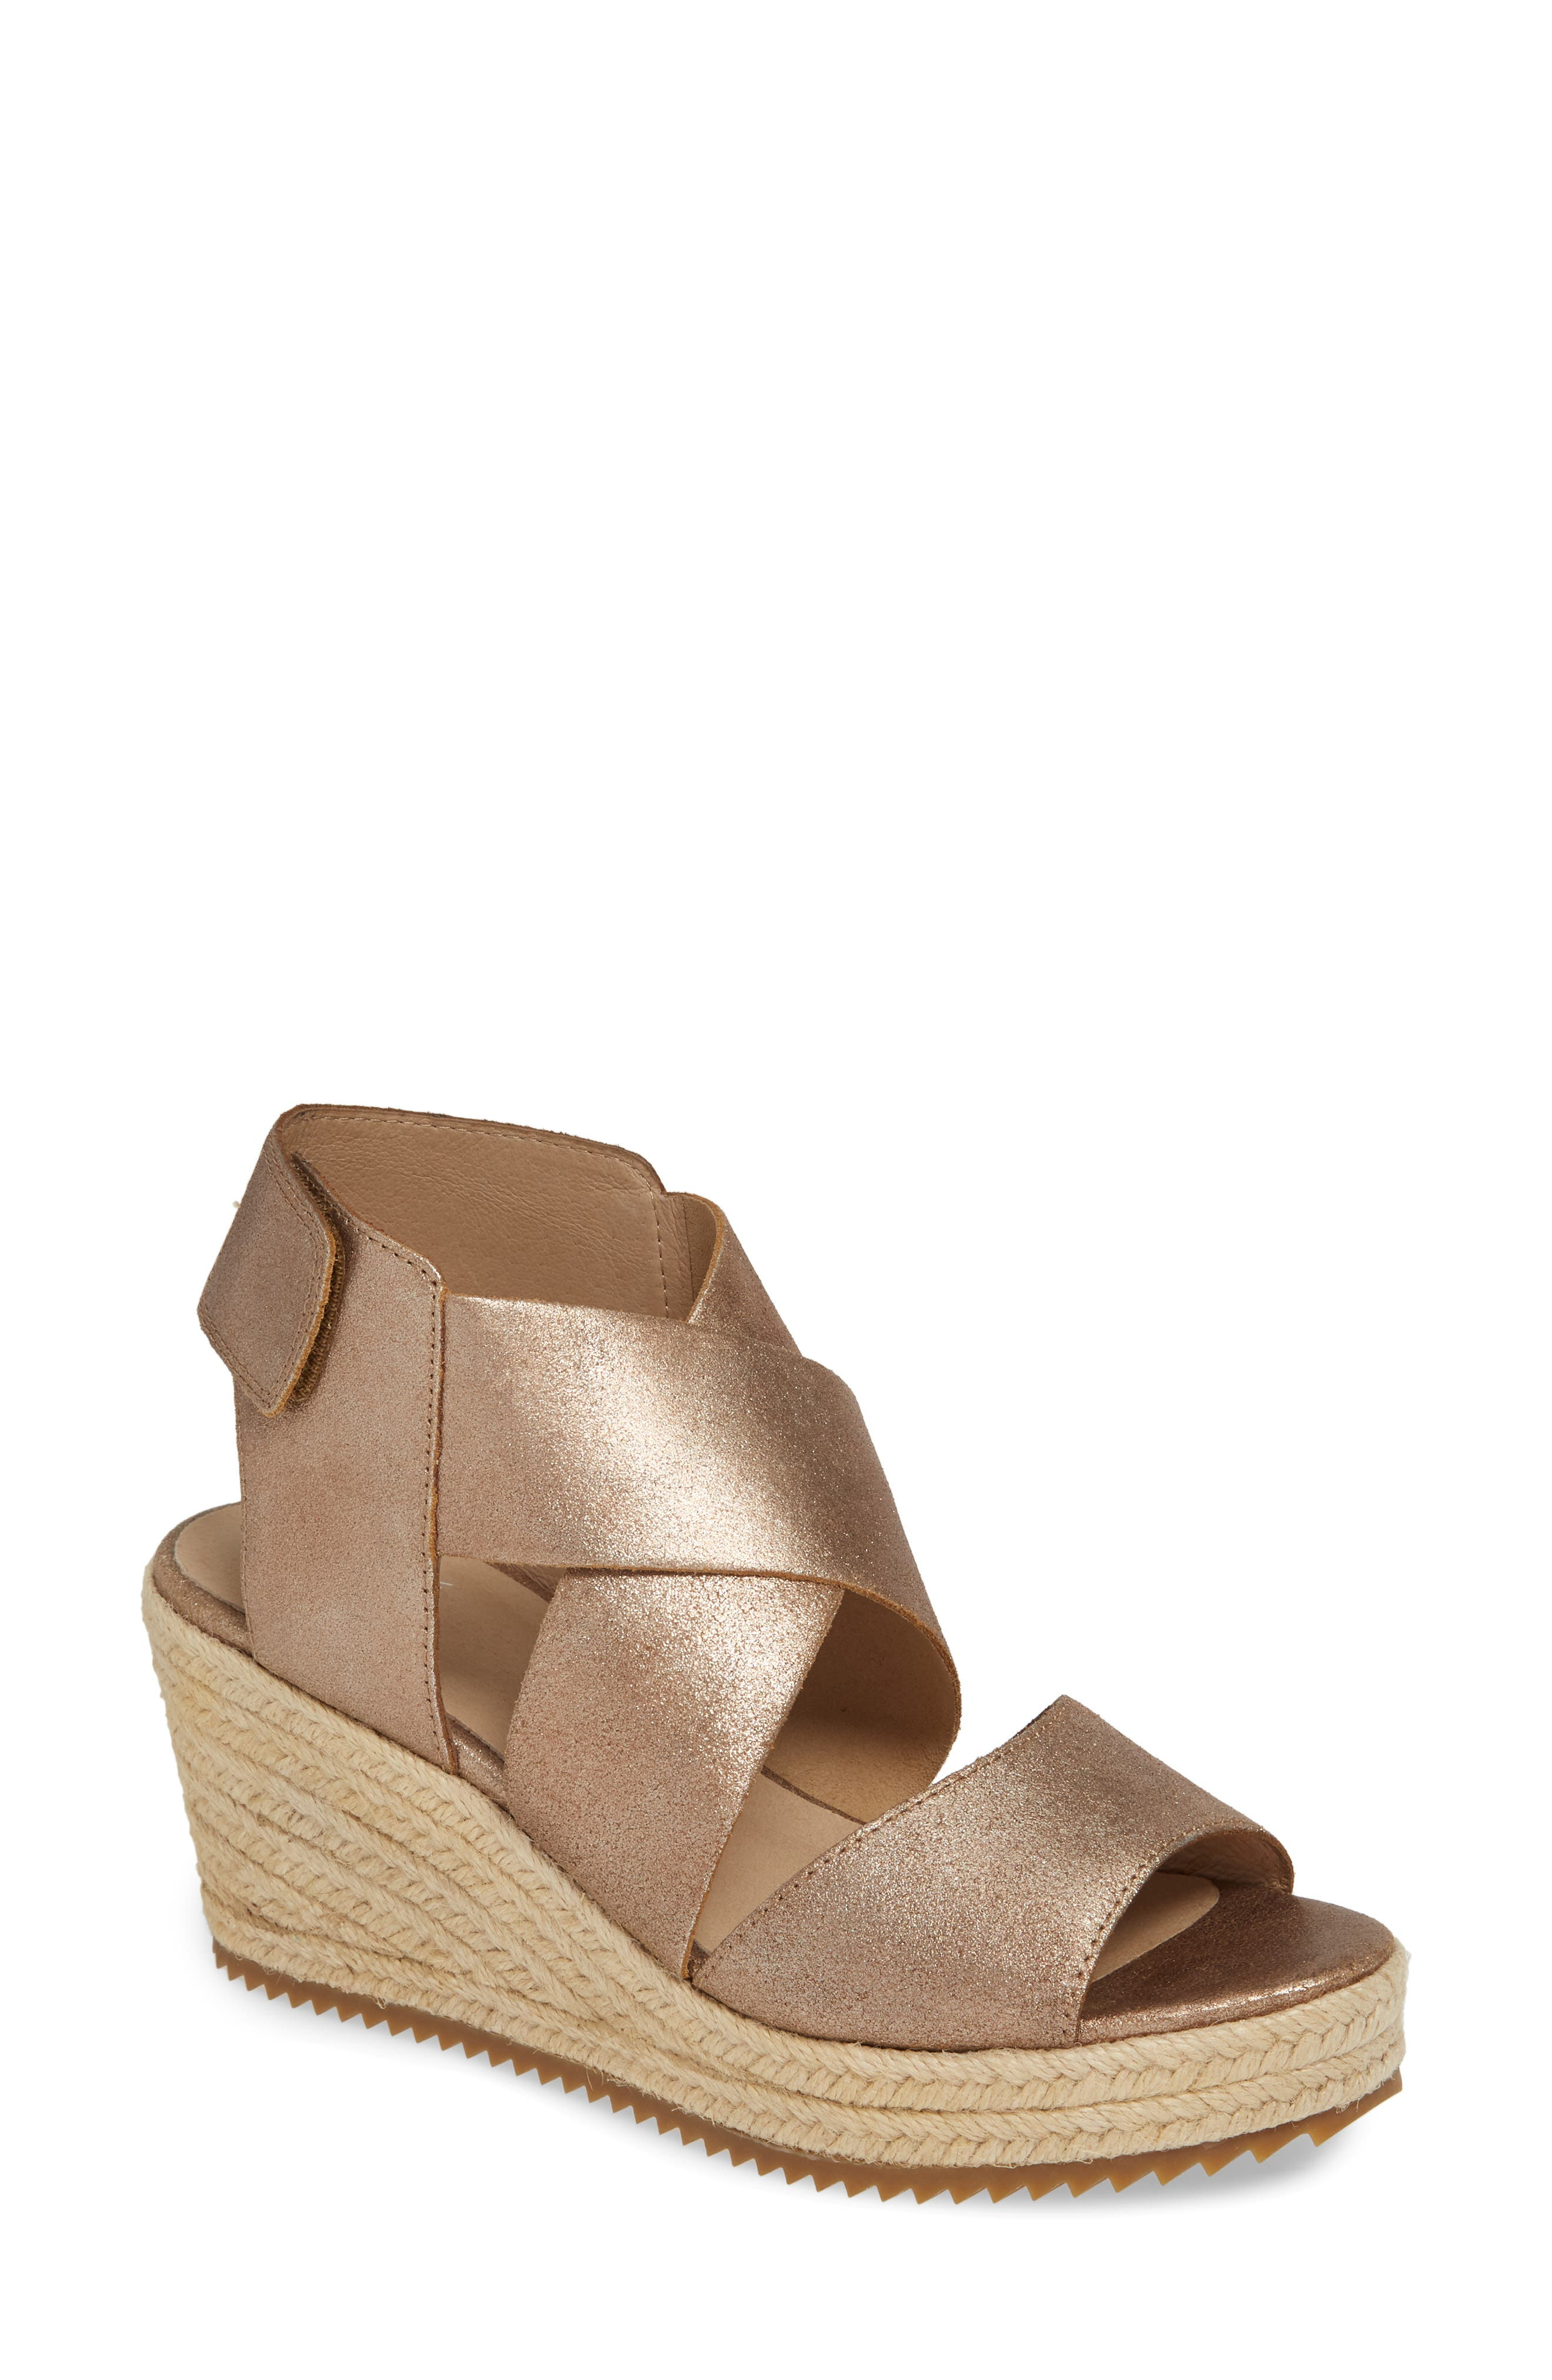 EILEEN FISHER, 'Willow' Espadrille Wedge Sandal, Main thumbnail 1, color, BRONZE/ BRONZE LEATHER